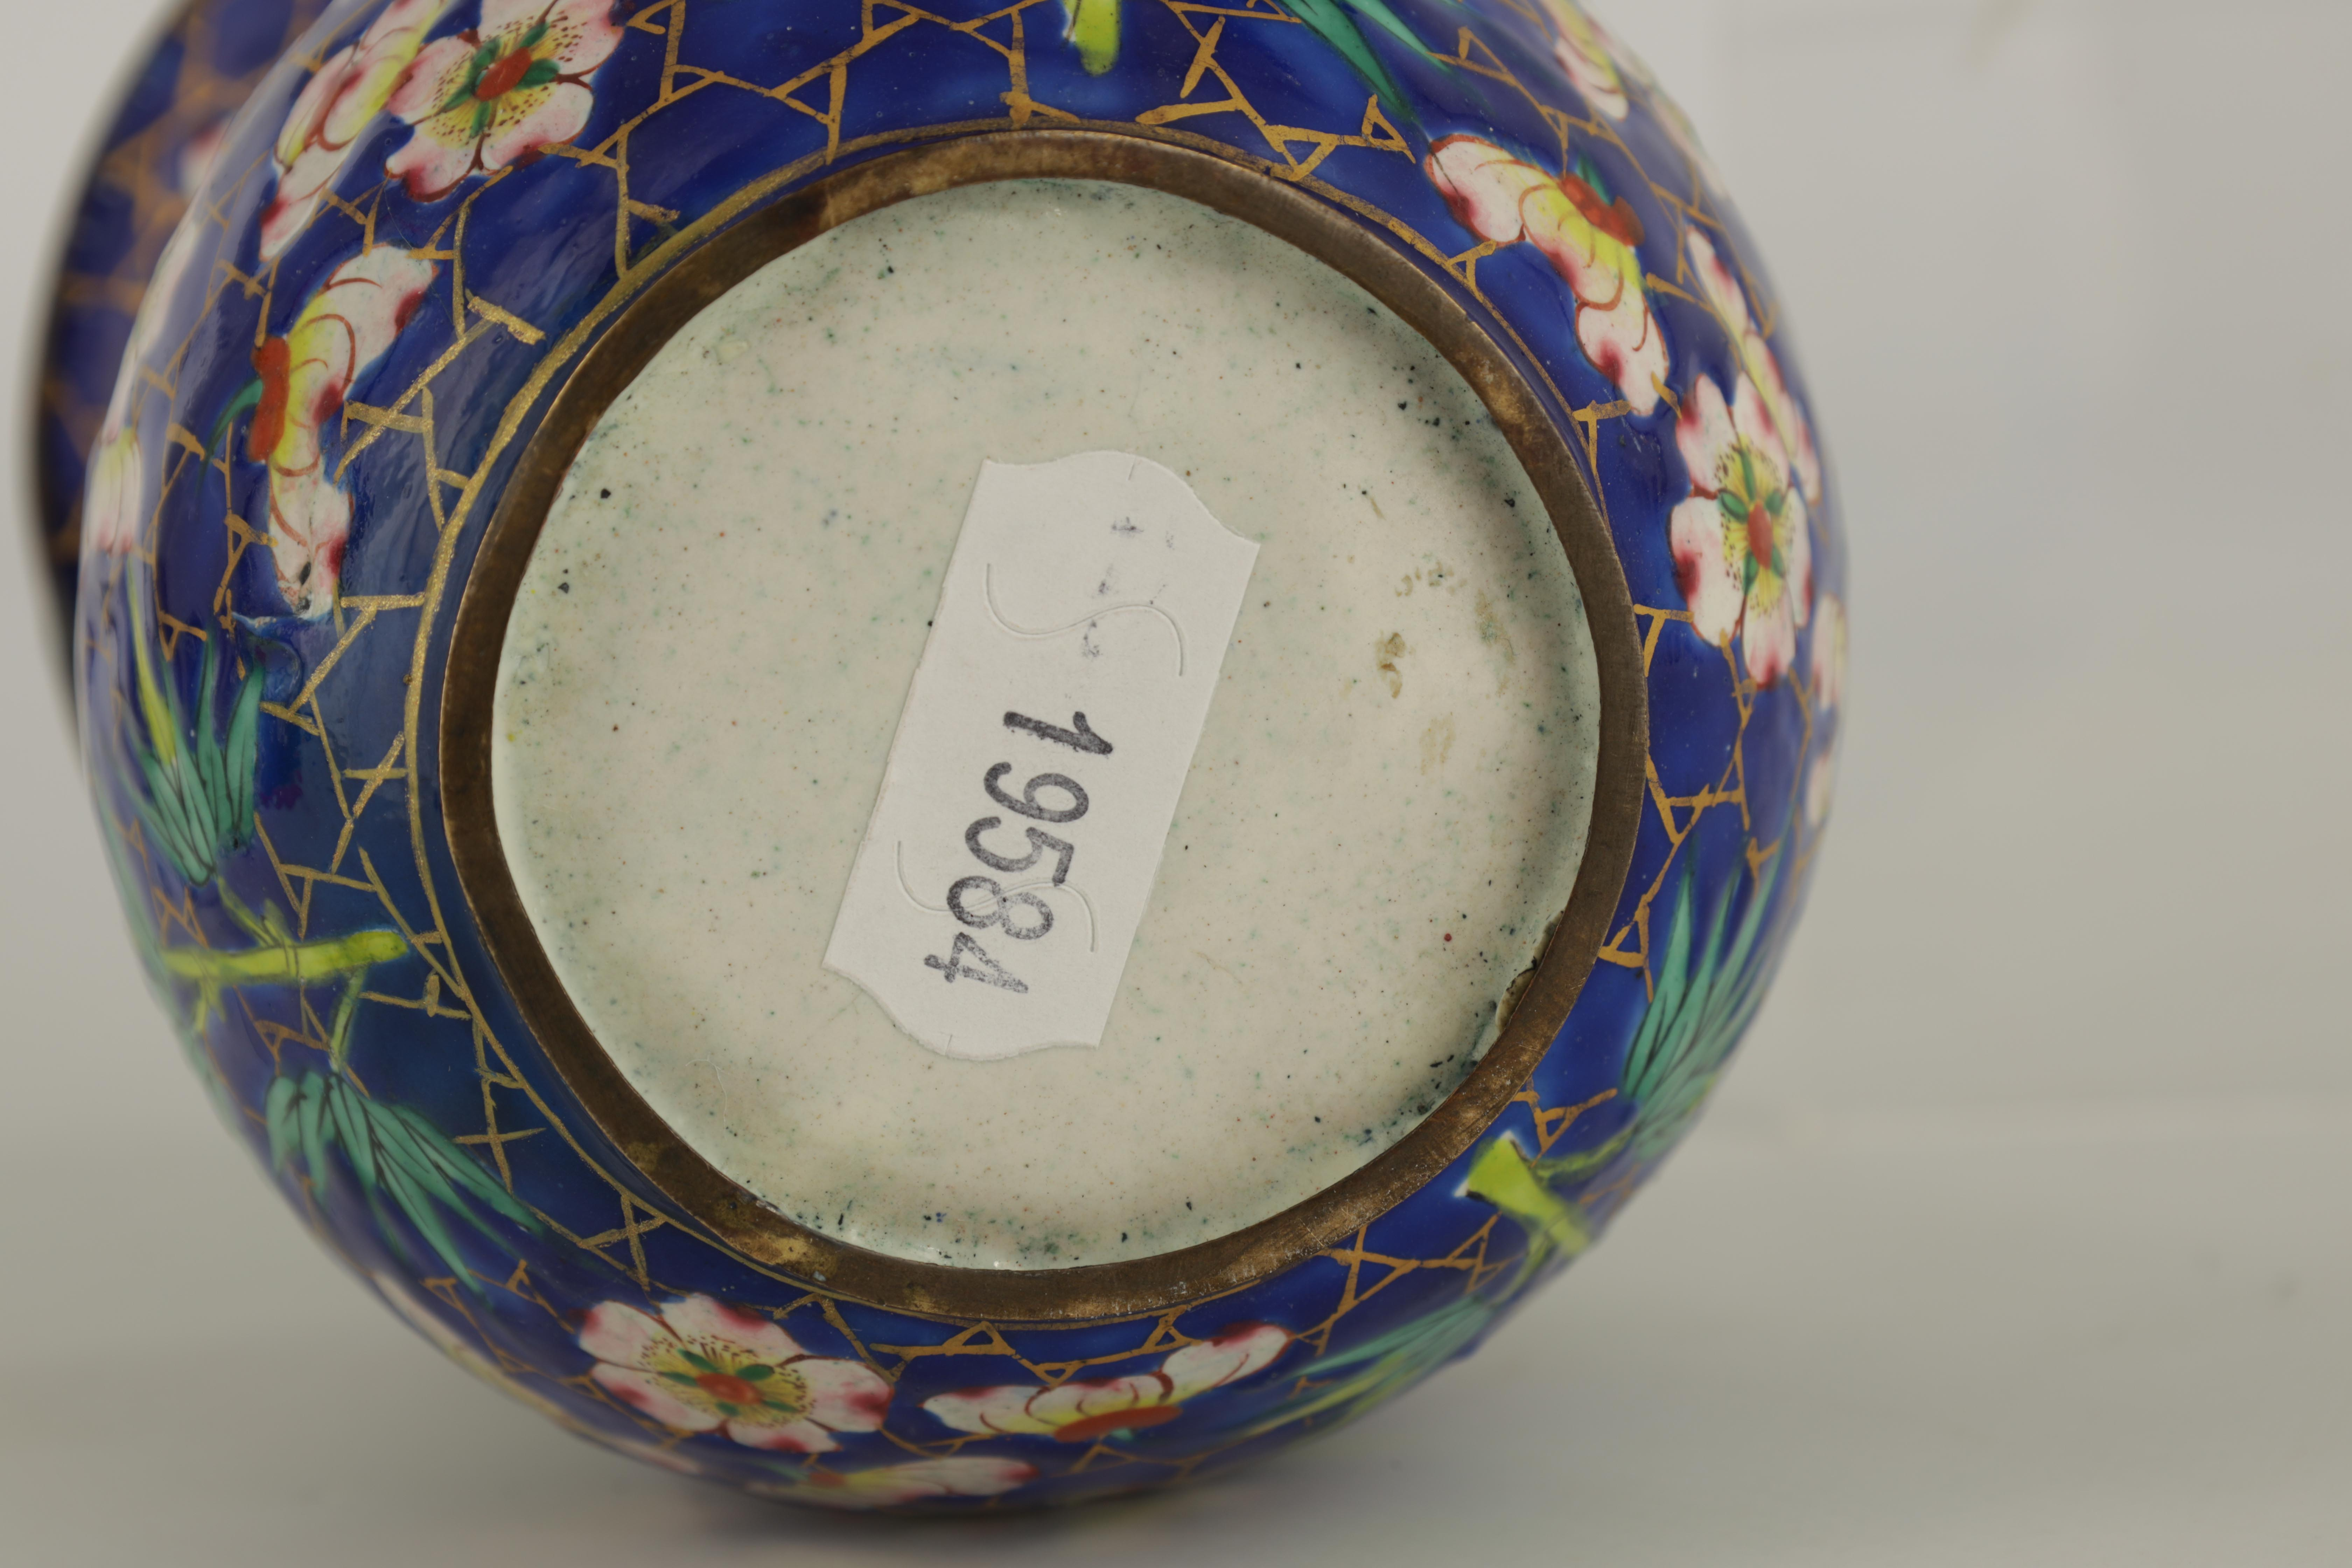 AN EARLY 19TH CENTURY CHINESE ENAMEL VASE of bulbous form with brightly coloured enamel decoration - Image 5 of 5